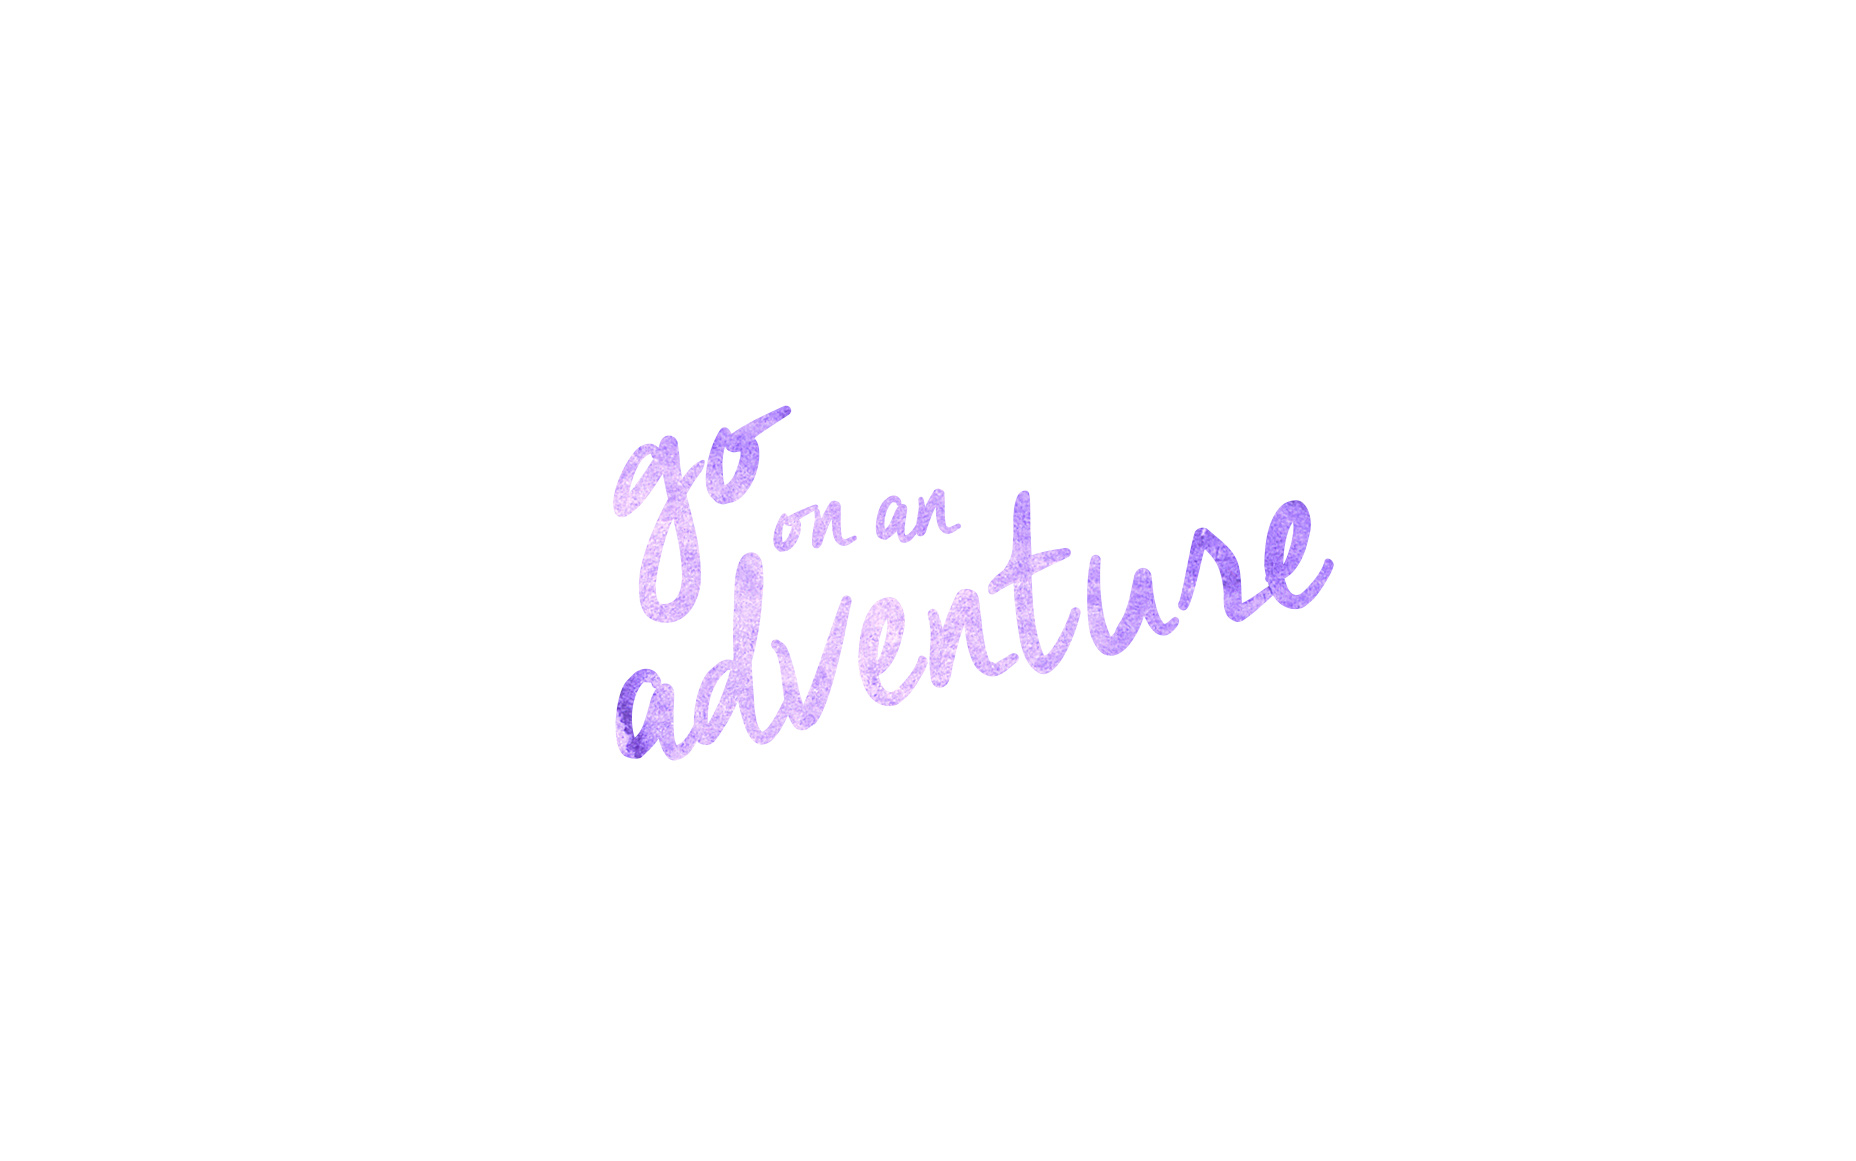 Go on an Adventure Wallpaper Download